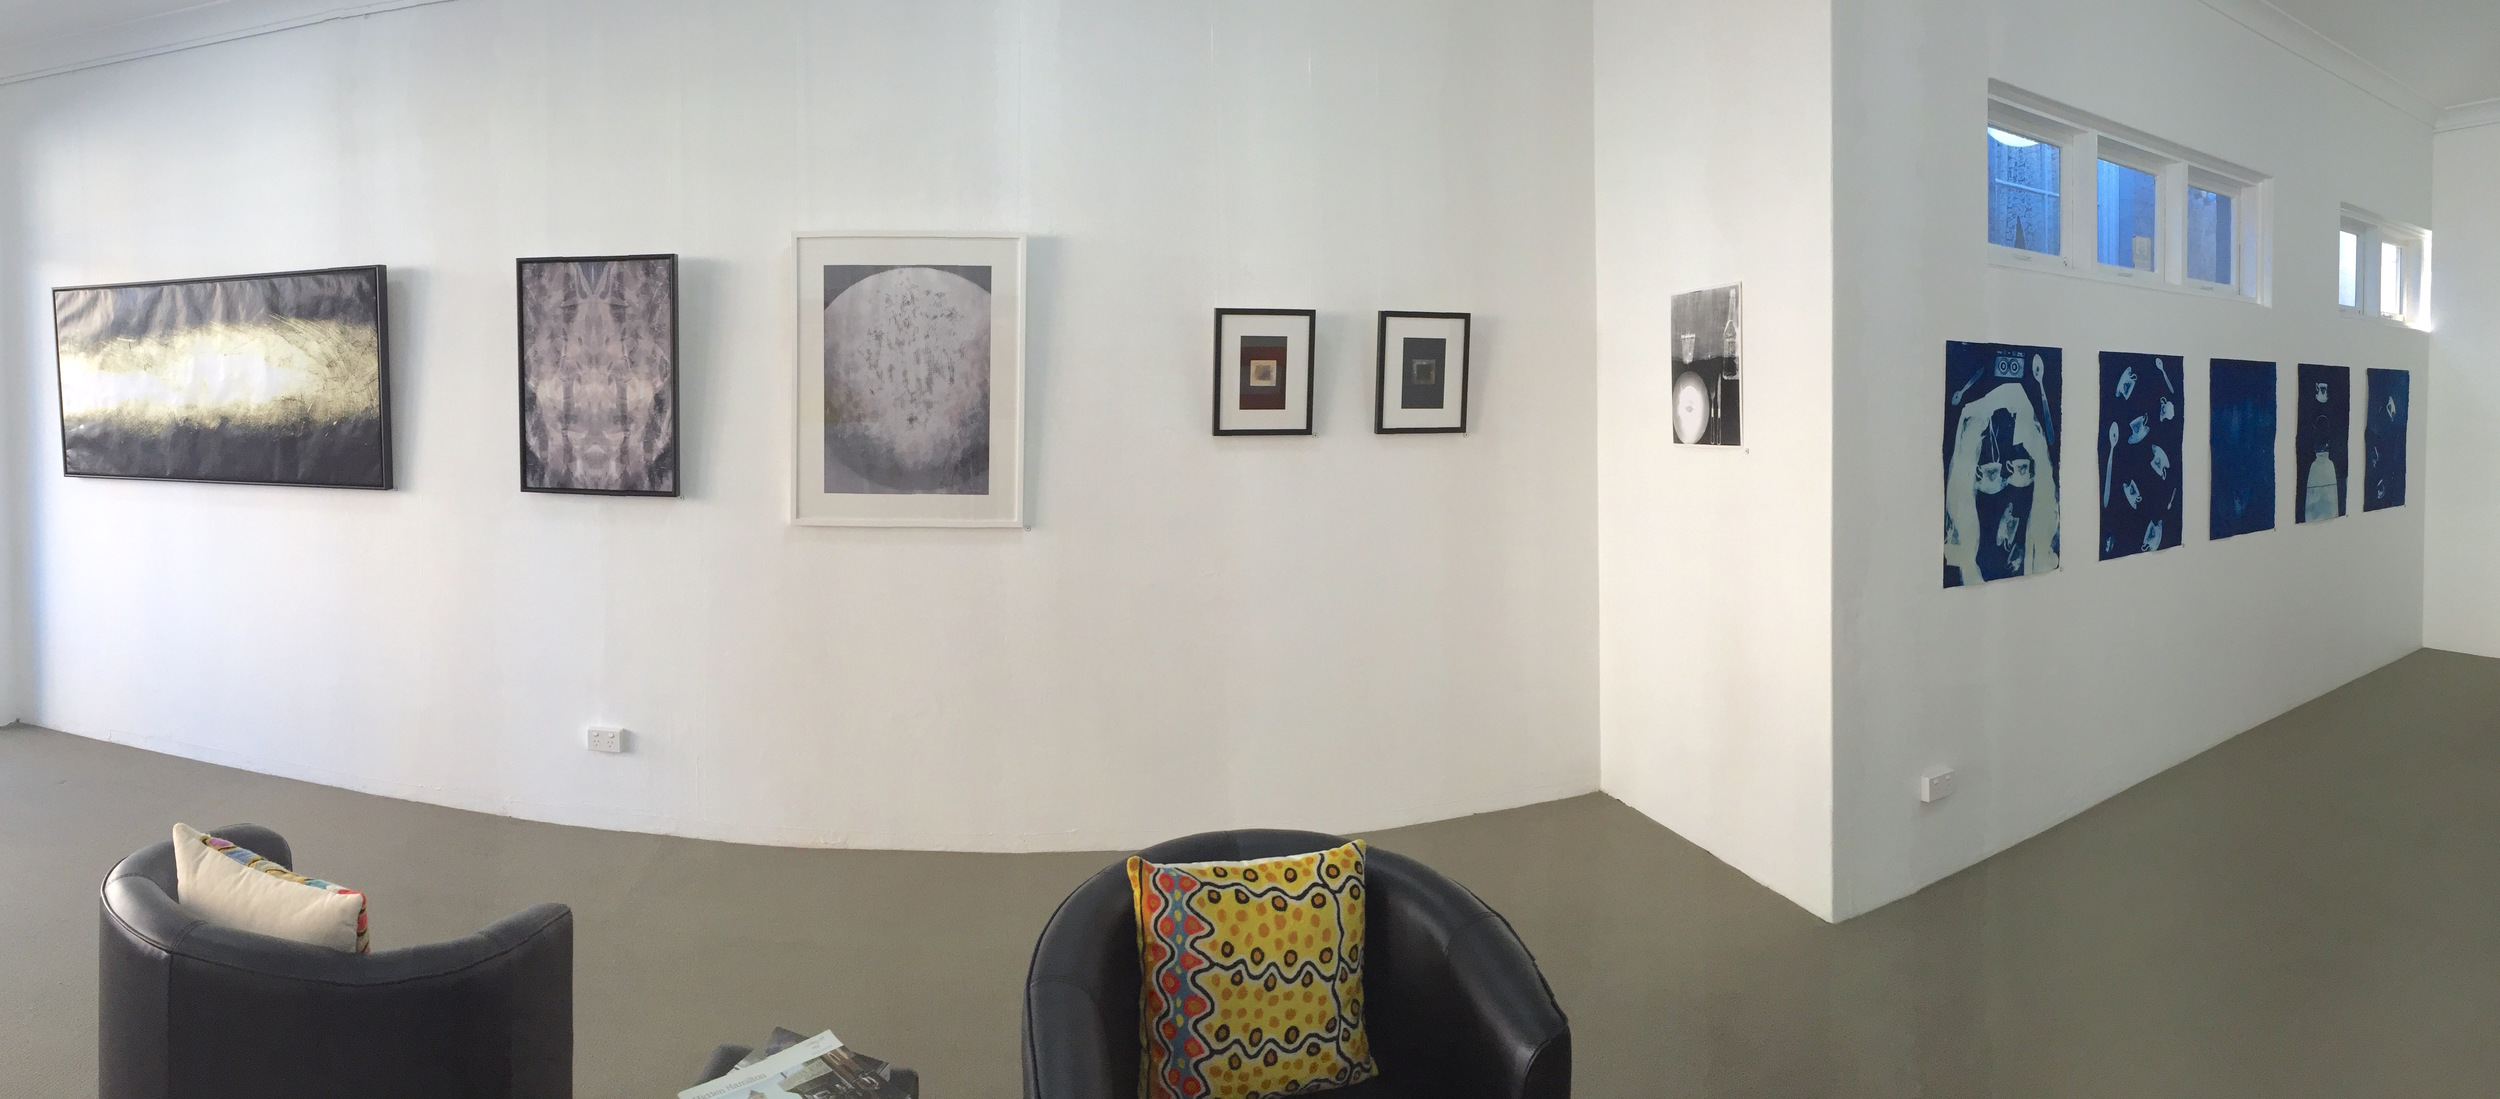 installation view  The Bounds of Photography  24 February - 13 March 2016